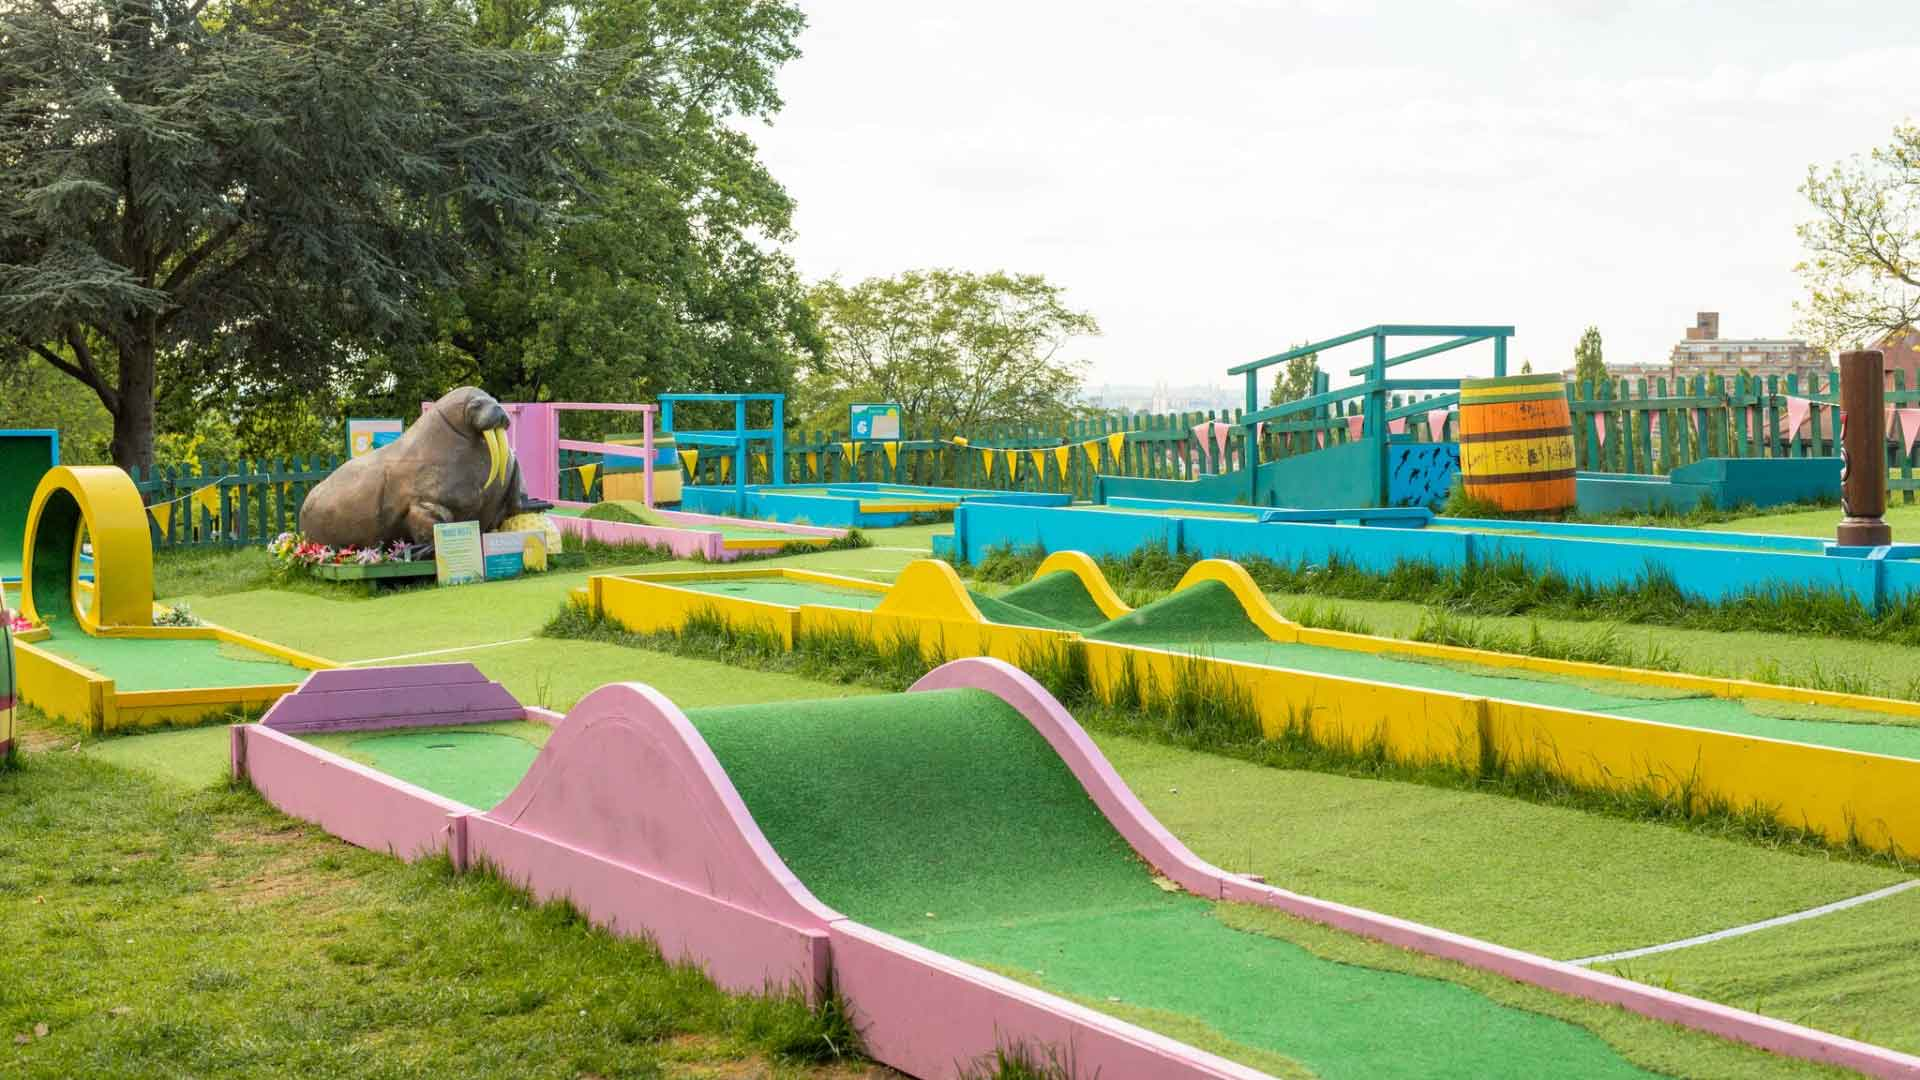 horniman crazy golf course